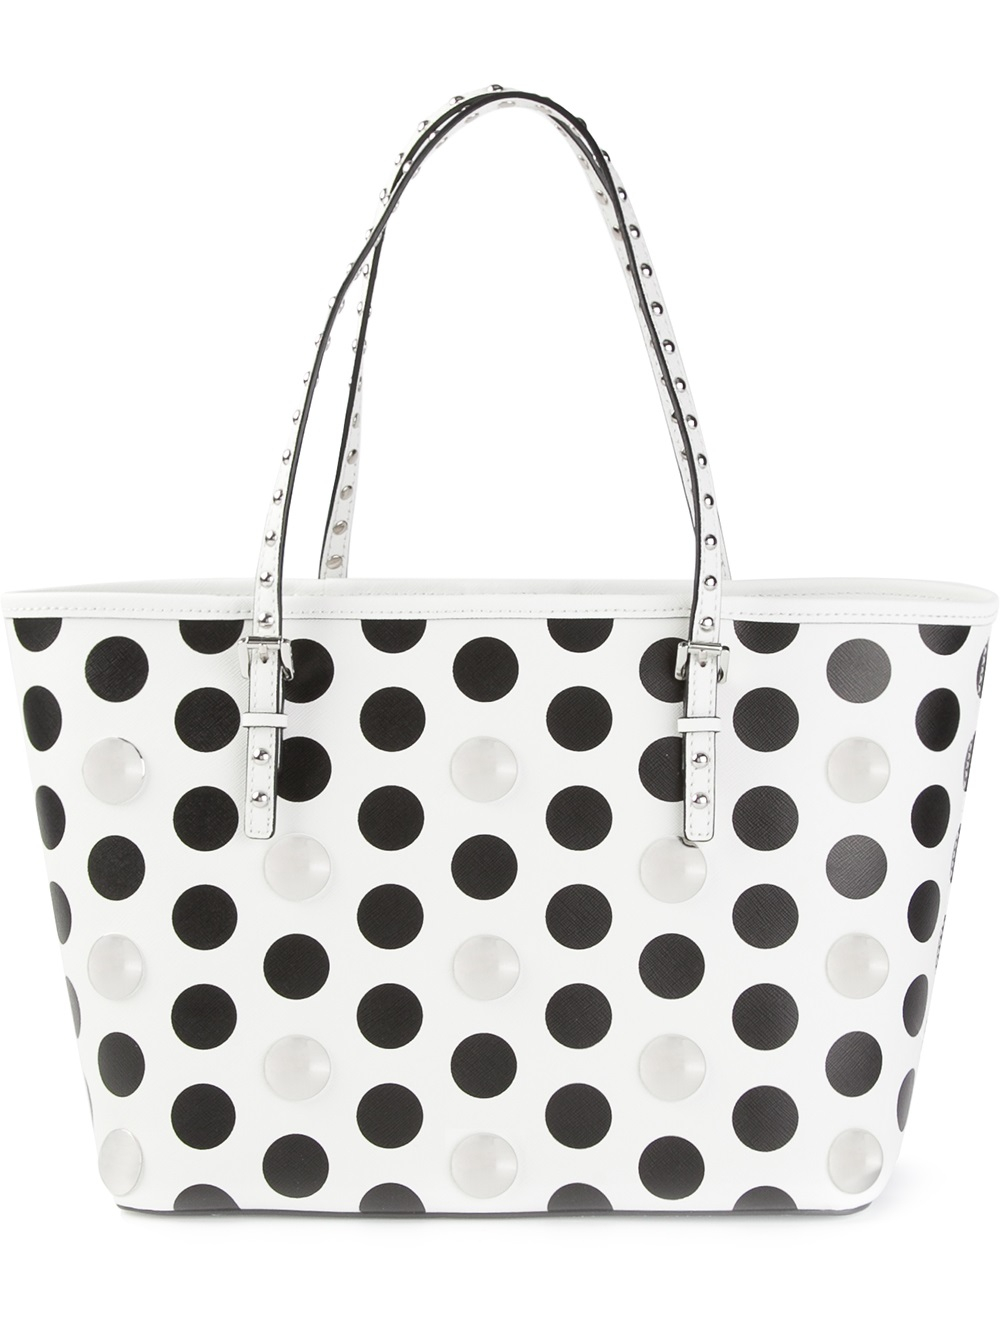 michael michael kors jet set shopper tote in white lyst. Black Bedroom Furniture Sets. Home Design Ideas